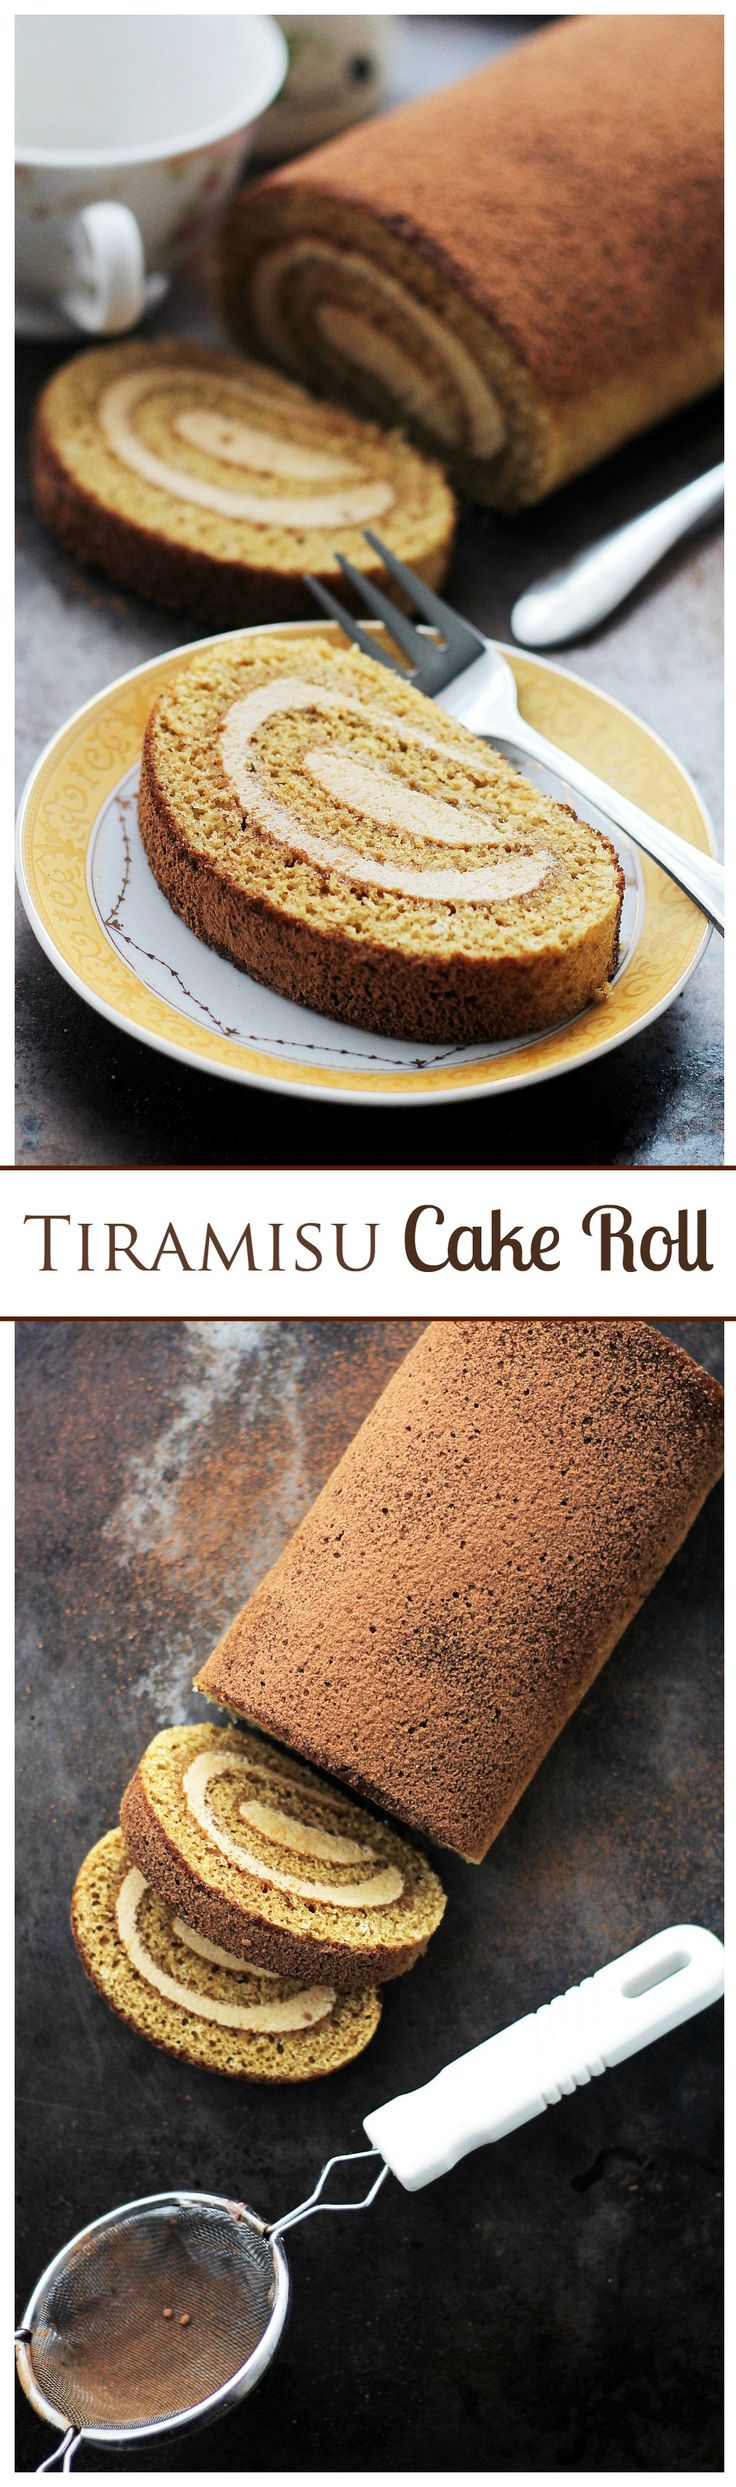 Tiramisu Cake Roll - Espresso flavored cake sponge brushed with a coffee-liqueur syrup and filled with a Mascarpone Cheese Whipped Cream.